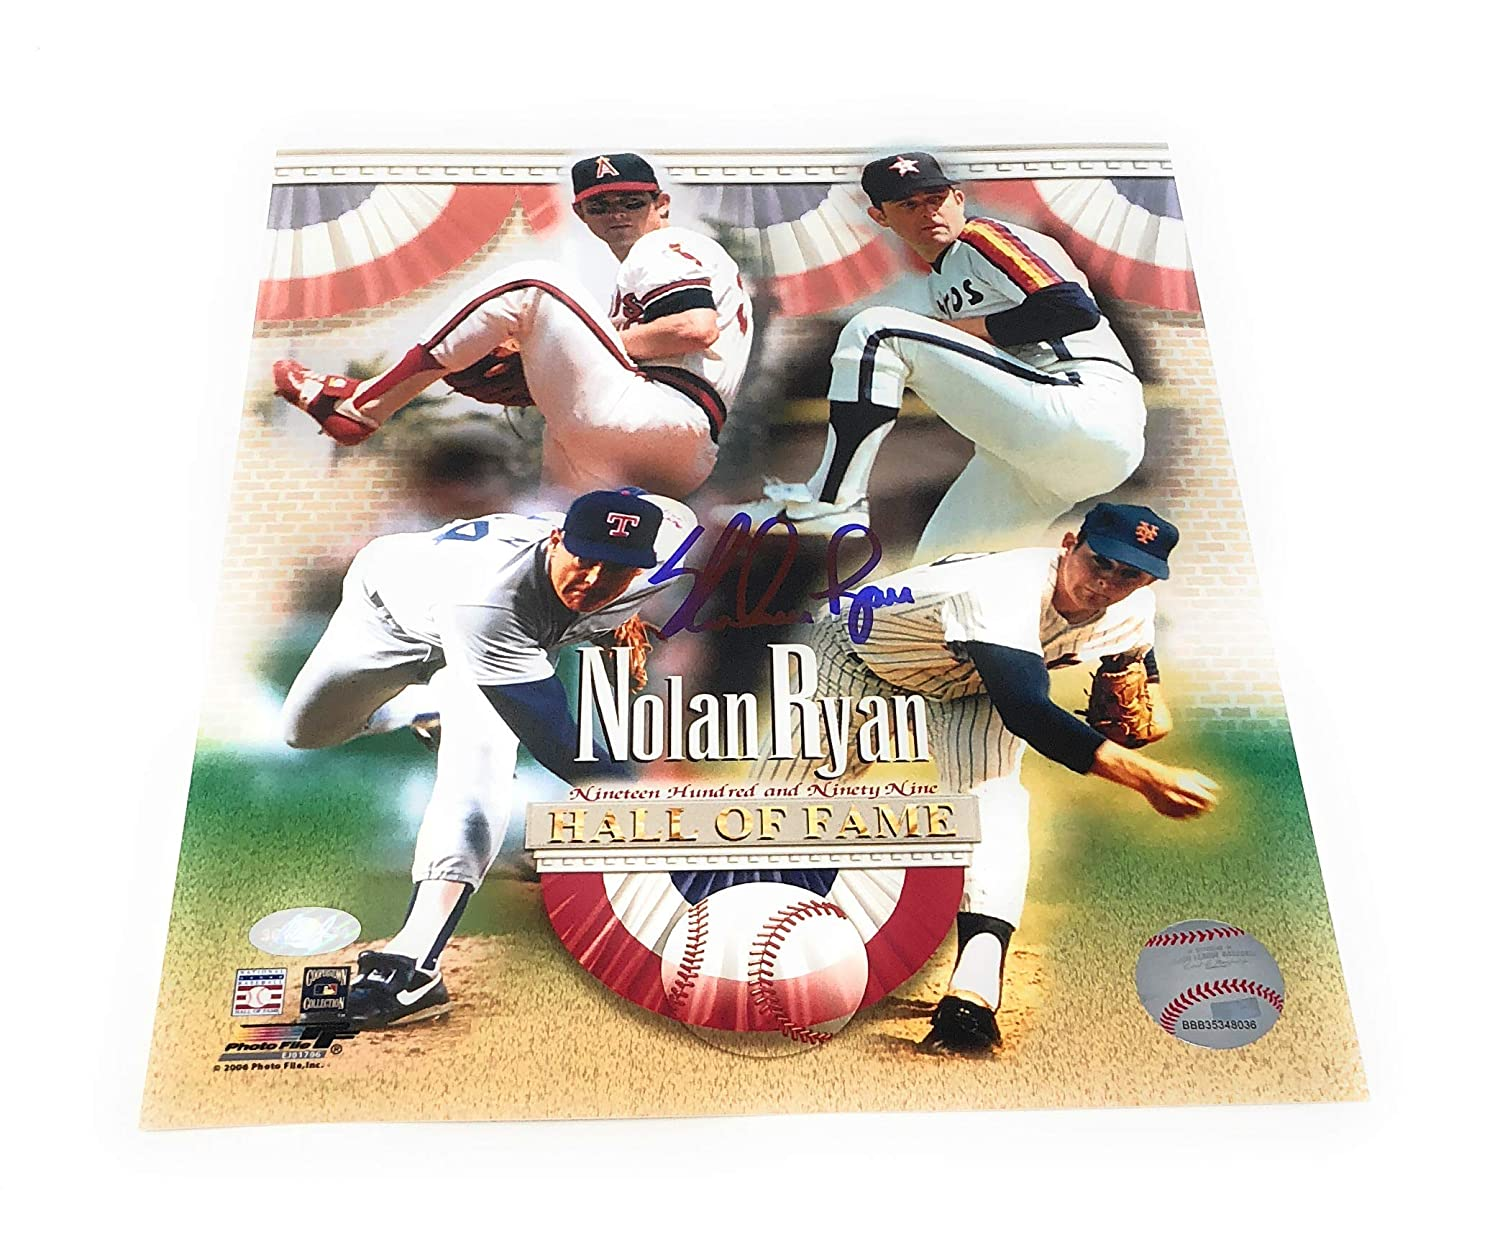 35ece4fc0 Nolan Ryan Astros Angels Mets Rangers Signed Autograph 8x10 Photo  Photograph N Ryan Player Hologram Certified at Amazon s Sports Collectibles  Store